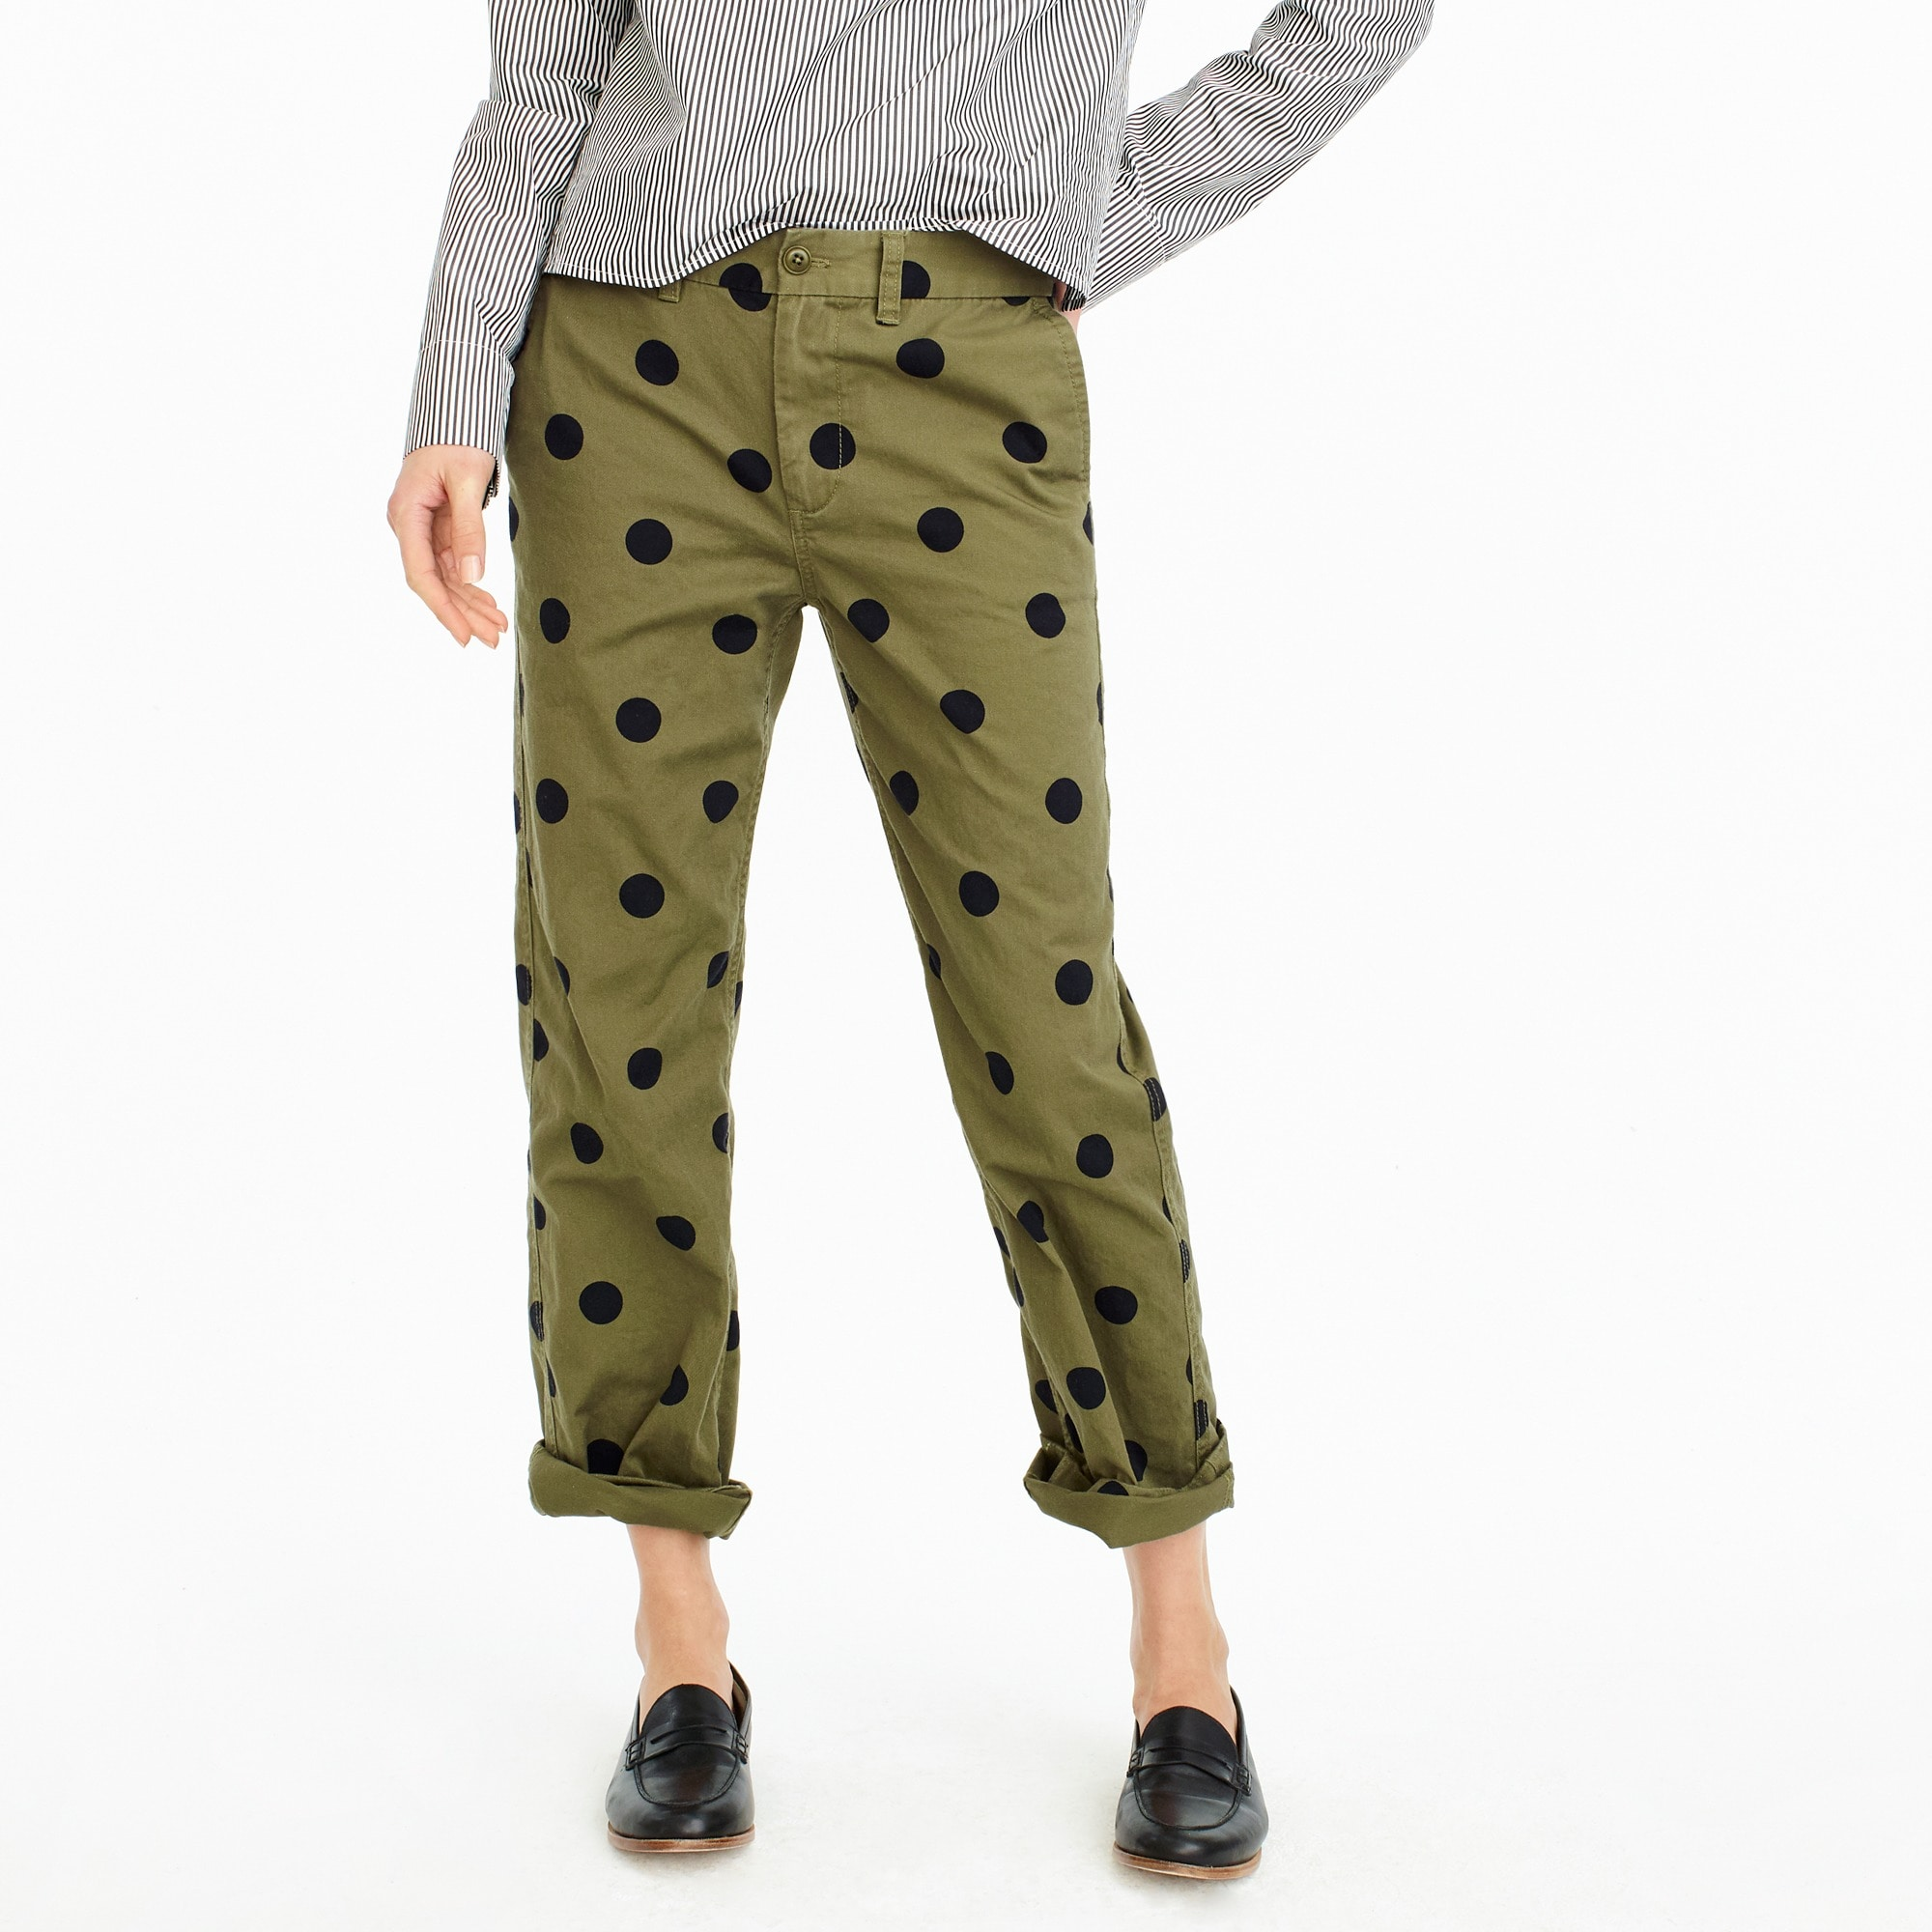 womens Boyfriend chino pant in polka dot